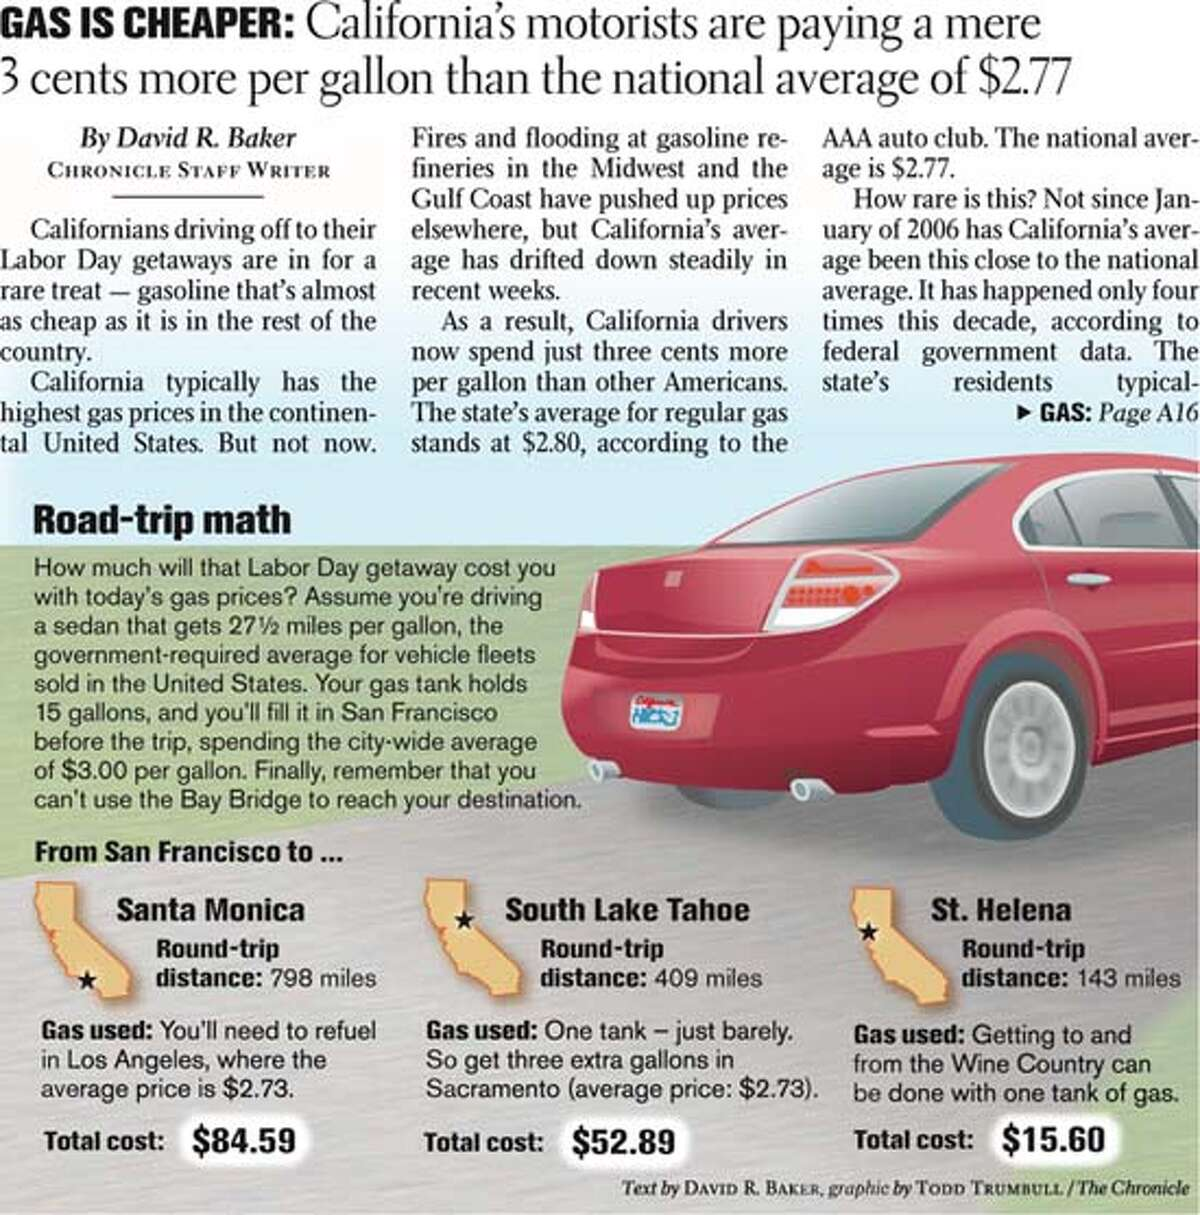 Road Trip Math. Chronicle graphic by Todd Trumbull, text by David R. Baker